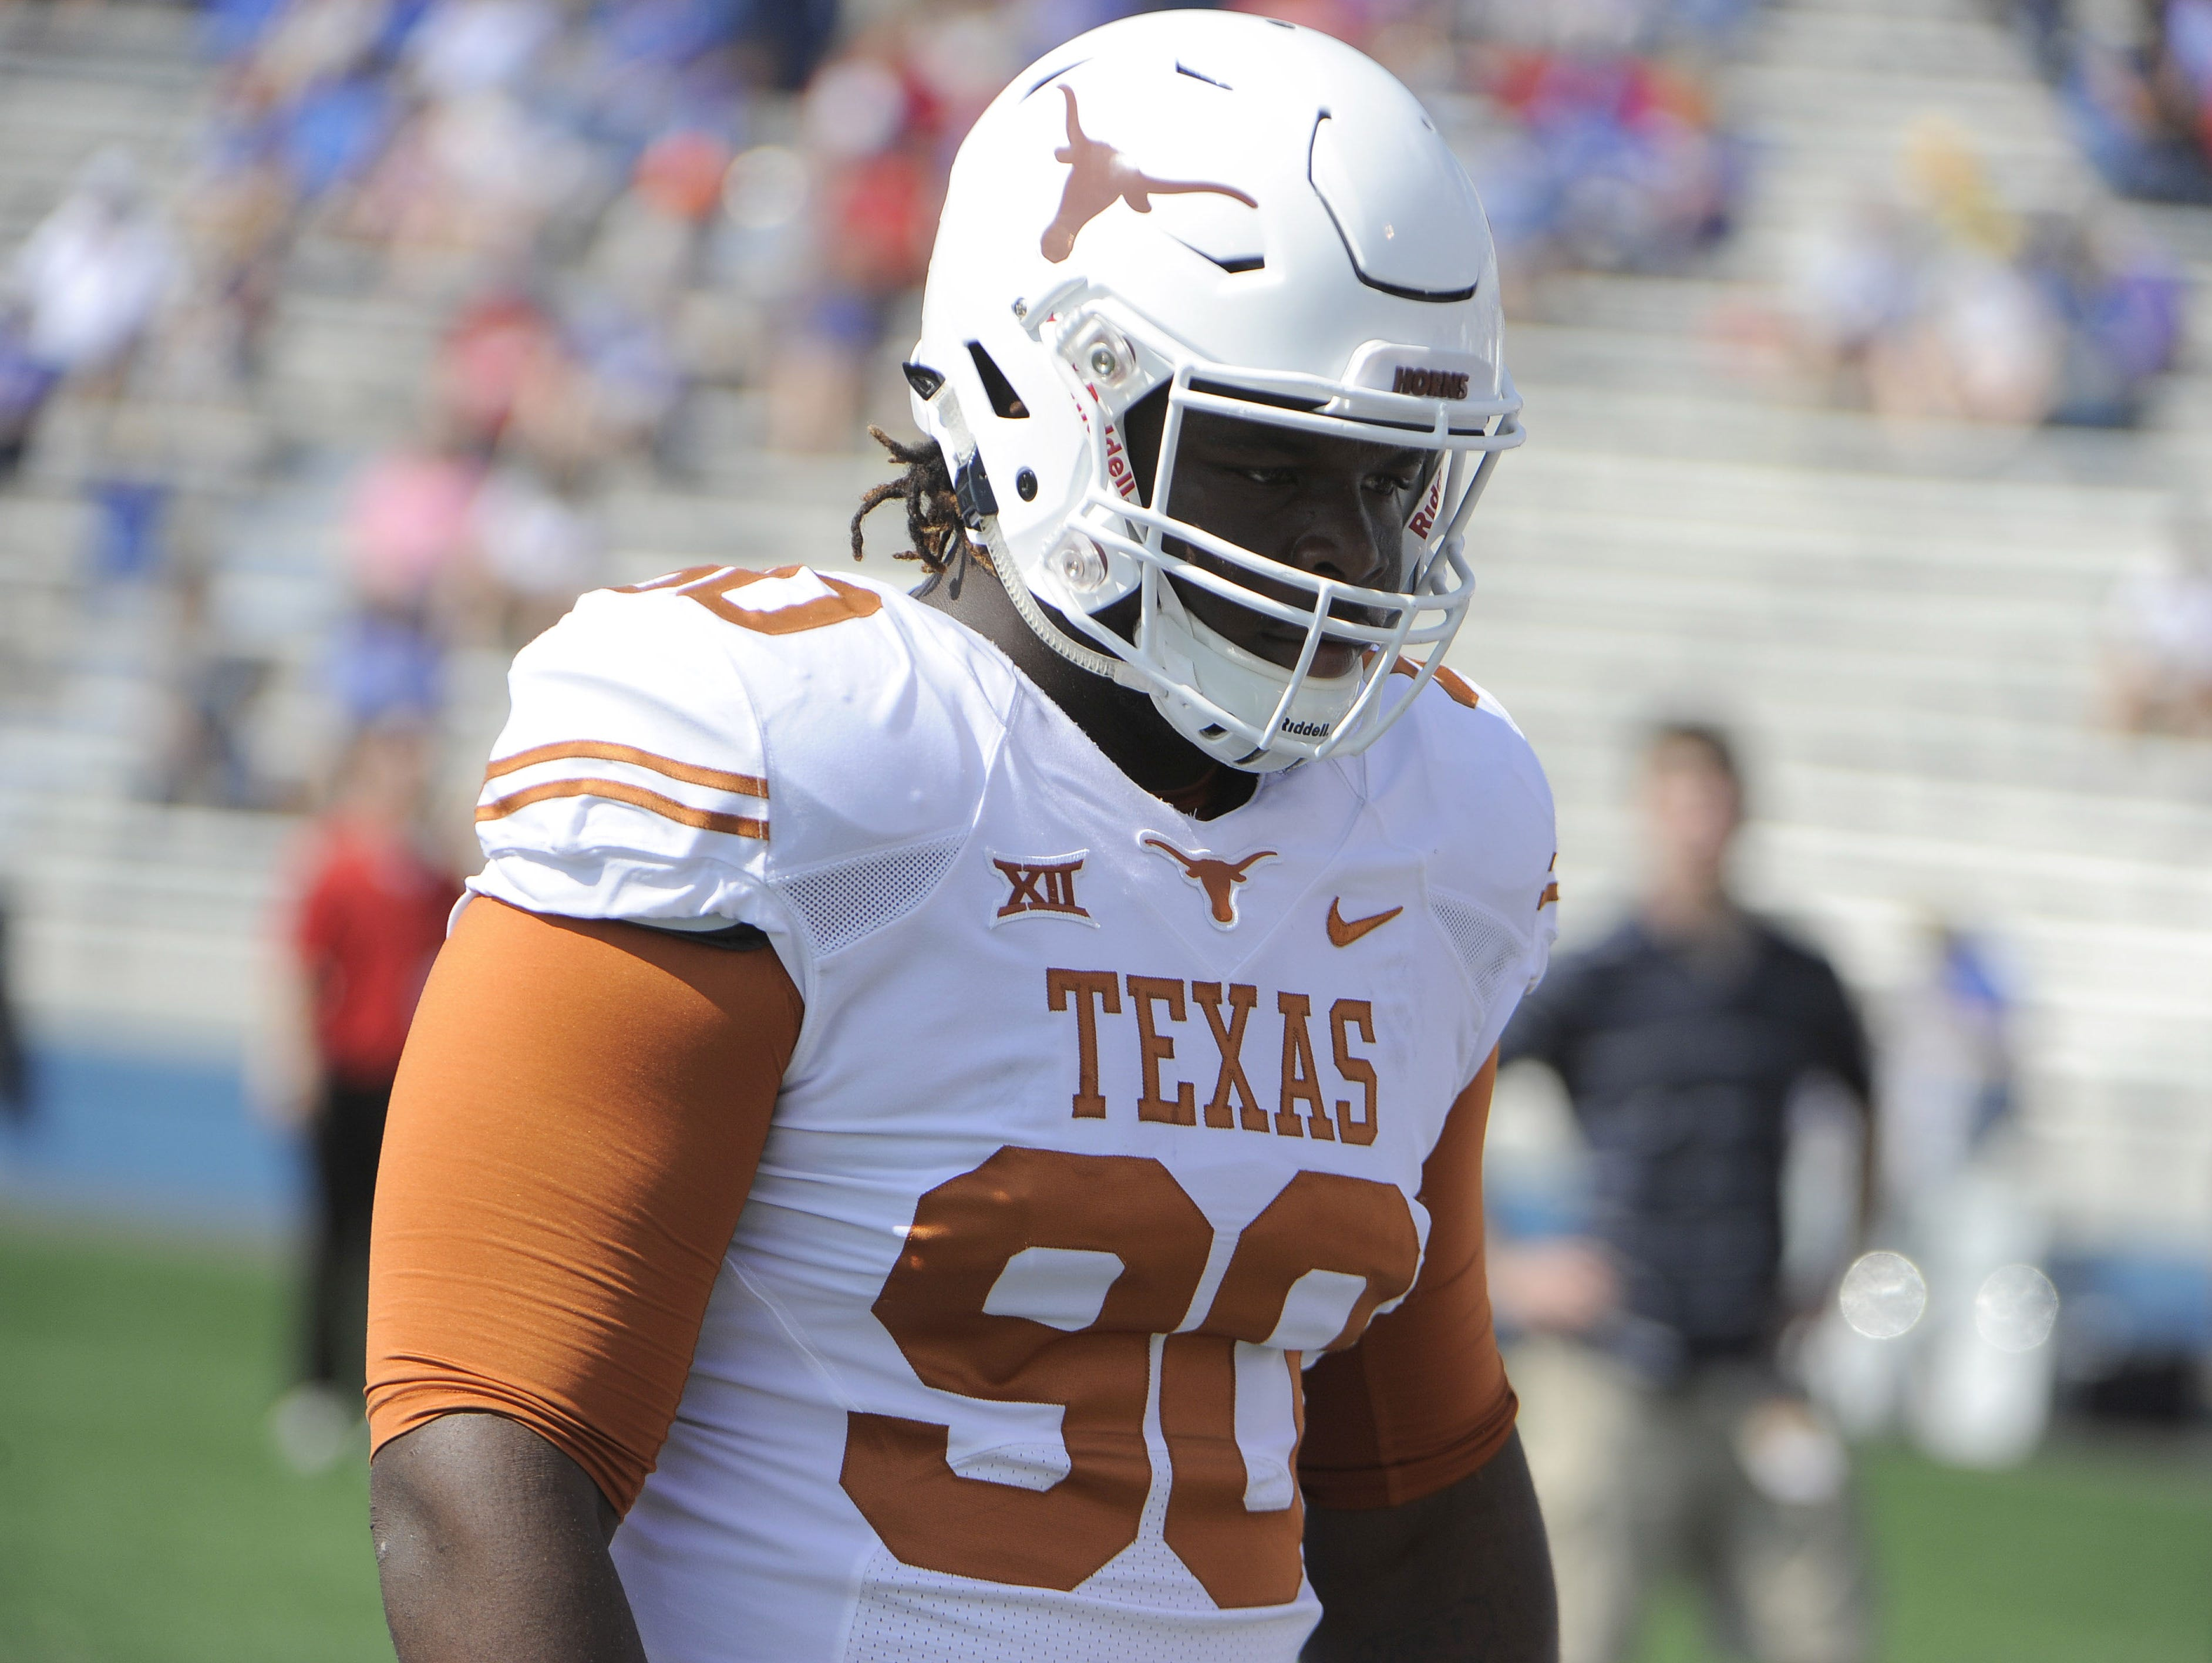 Sep 27, 2014; Lawrence, KS, USA; Texas Longhorns defensive tackle Malcom Brown (90) warms up before the game against the Kansas Jayhawks at Memorial Stadium. Texas won the game 23-0. Mandatory Credit: John Rieger-USA TODAY Sports